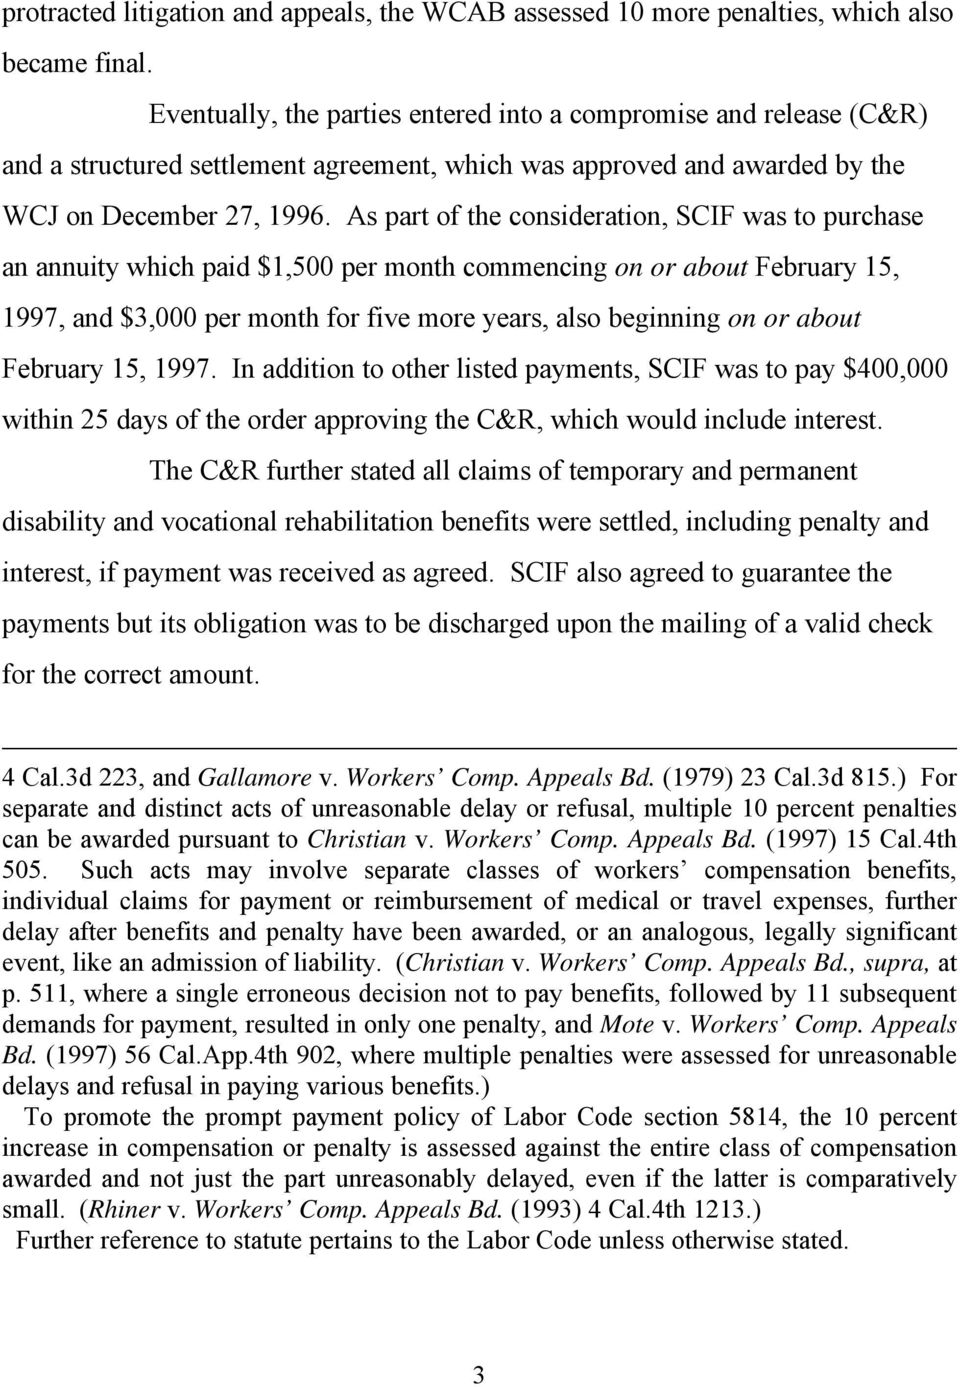 As part of the consideration, SCIF was to purchase an annuity which paid $1,500 per month commencing on or about February 15, 1997, and $3,000 per month for five more years, also beginning on or